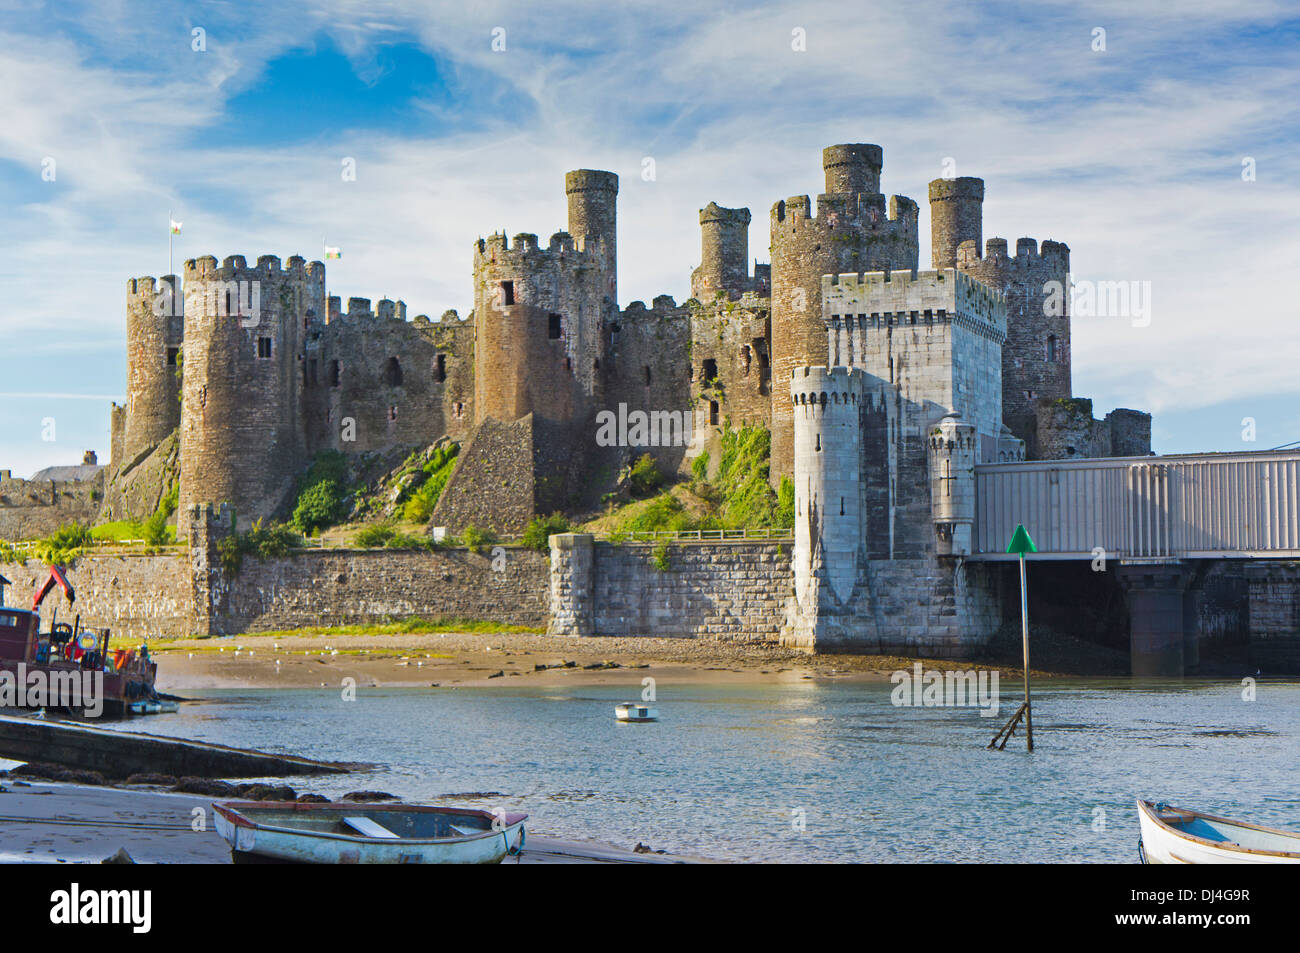 Conway Castle and Bridge North Wales Uk. - Stock Image